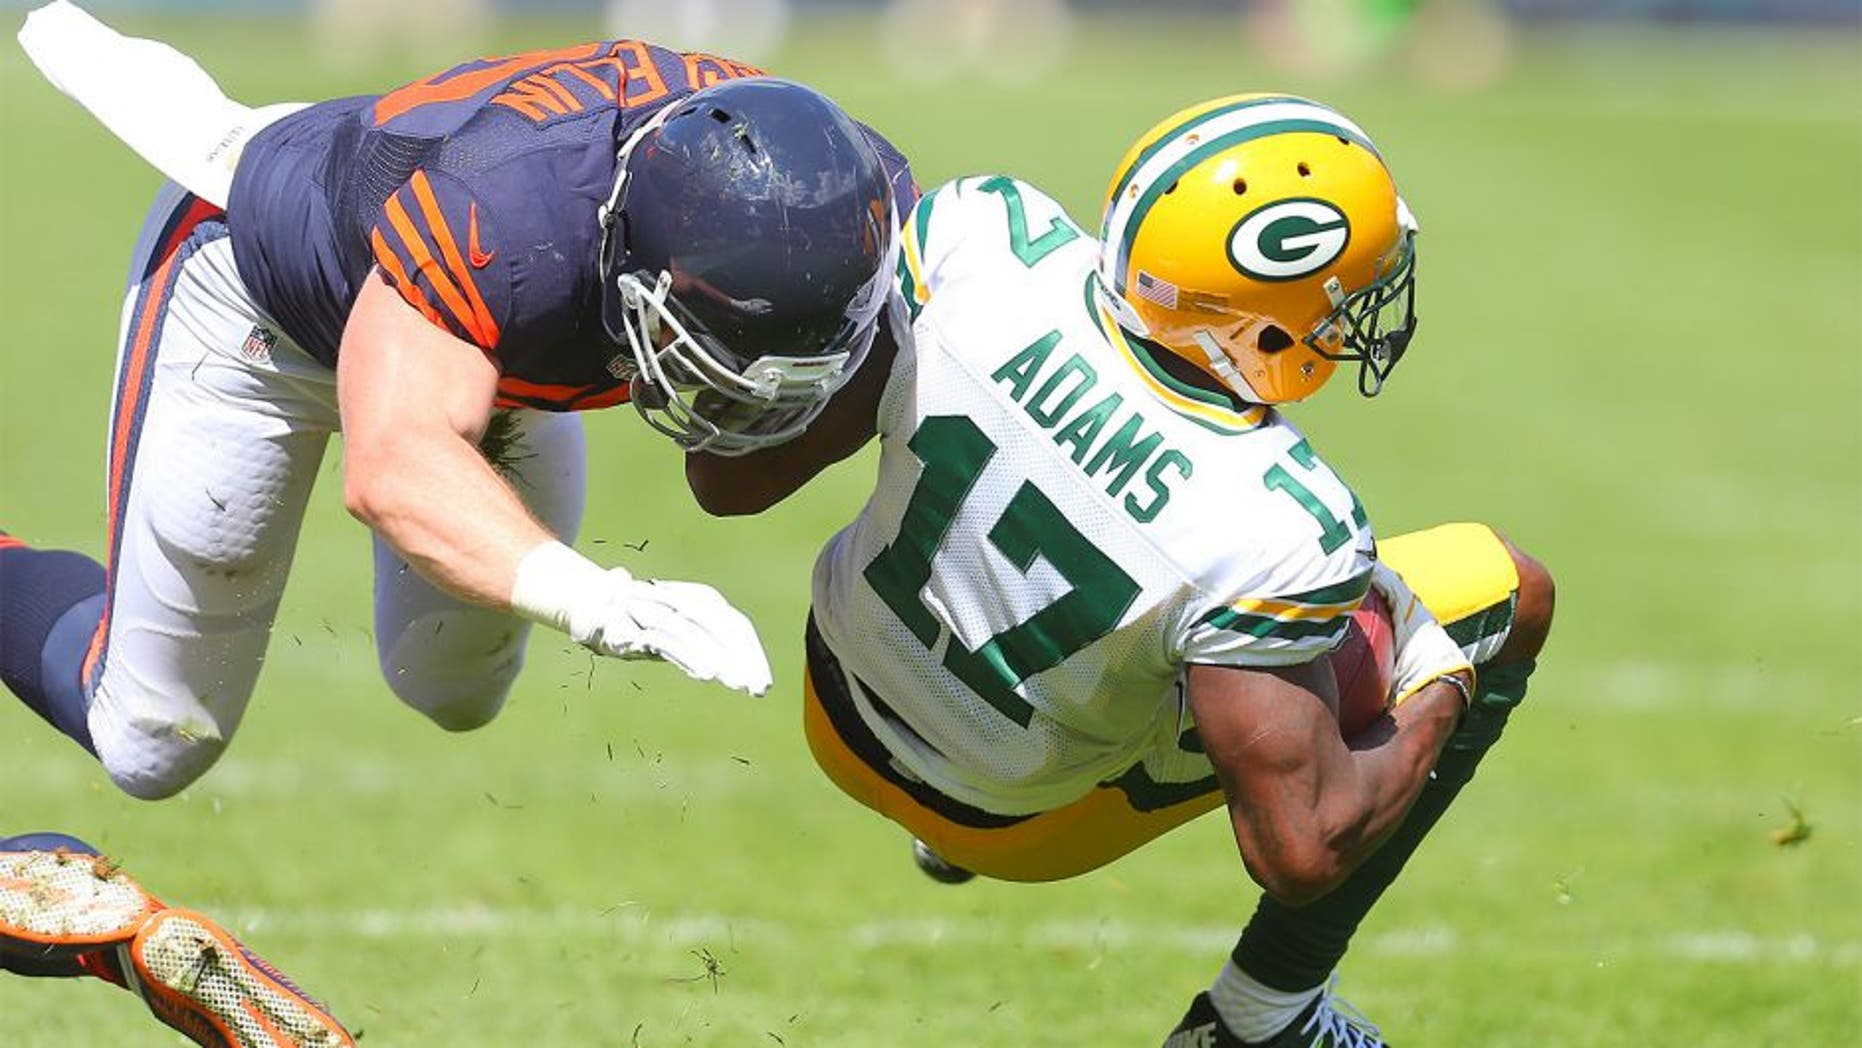 Sep 13, 2015; Chicago, IL, USA; Green Bay Packers wide receiver Davante Adams (17) is tackled by Chicago Bears outside linebacker Shea McClellin (50) during the second quarter at Soldier Field. Mandatory Credit: Dennis Wierzbicki-USA TODAY Sports